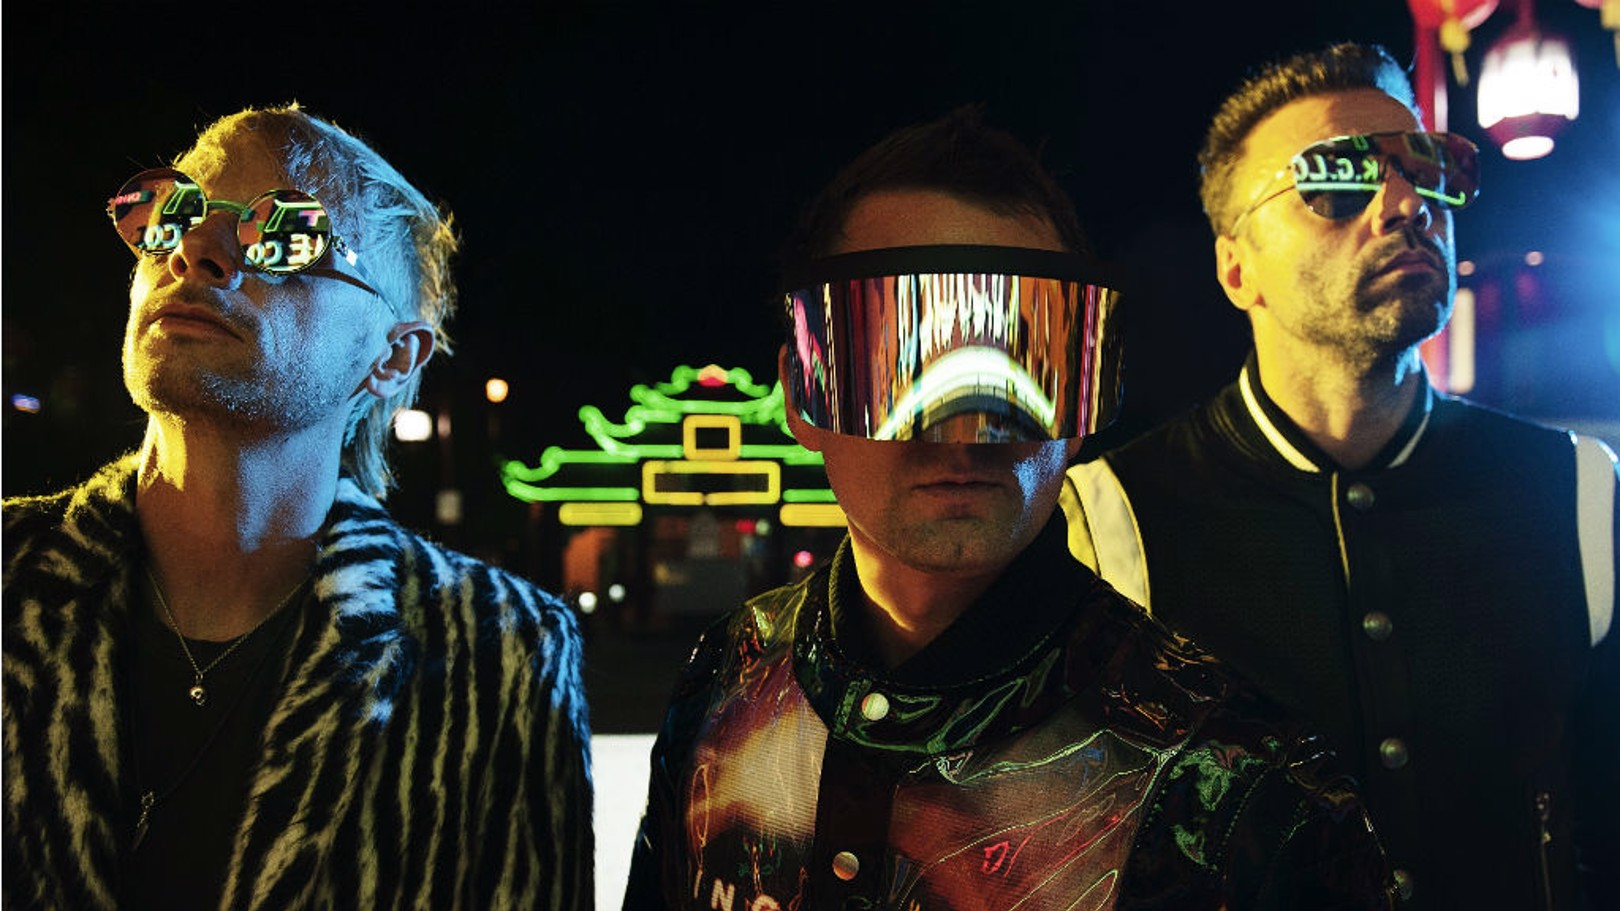 CITY DATE: Muse will be playing at the Etihad Stadium next June